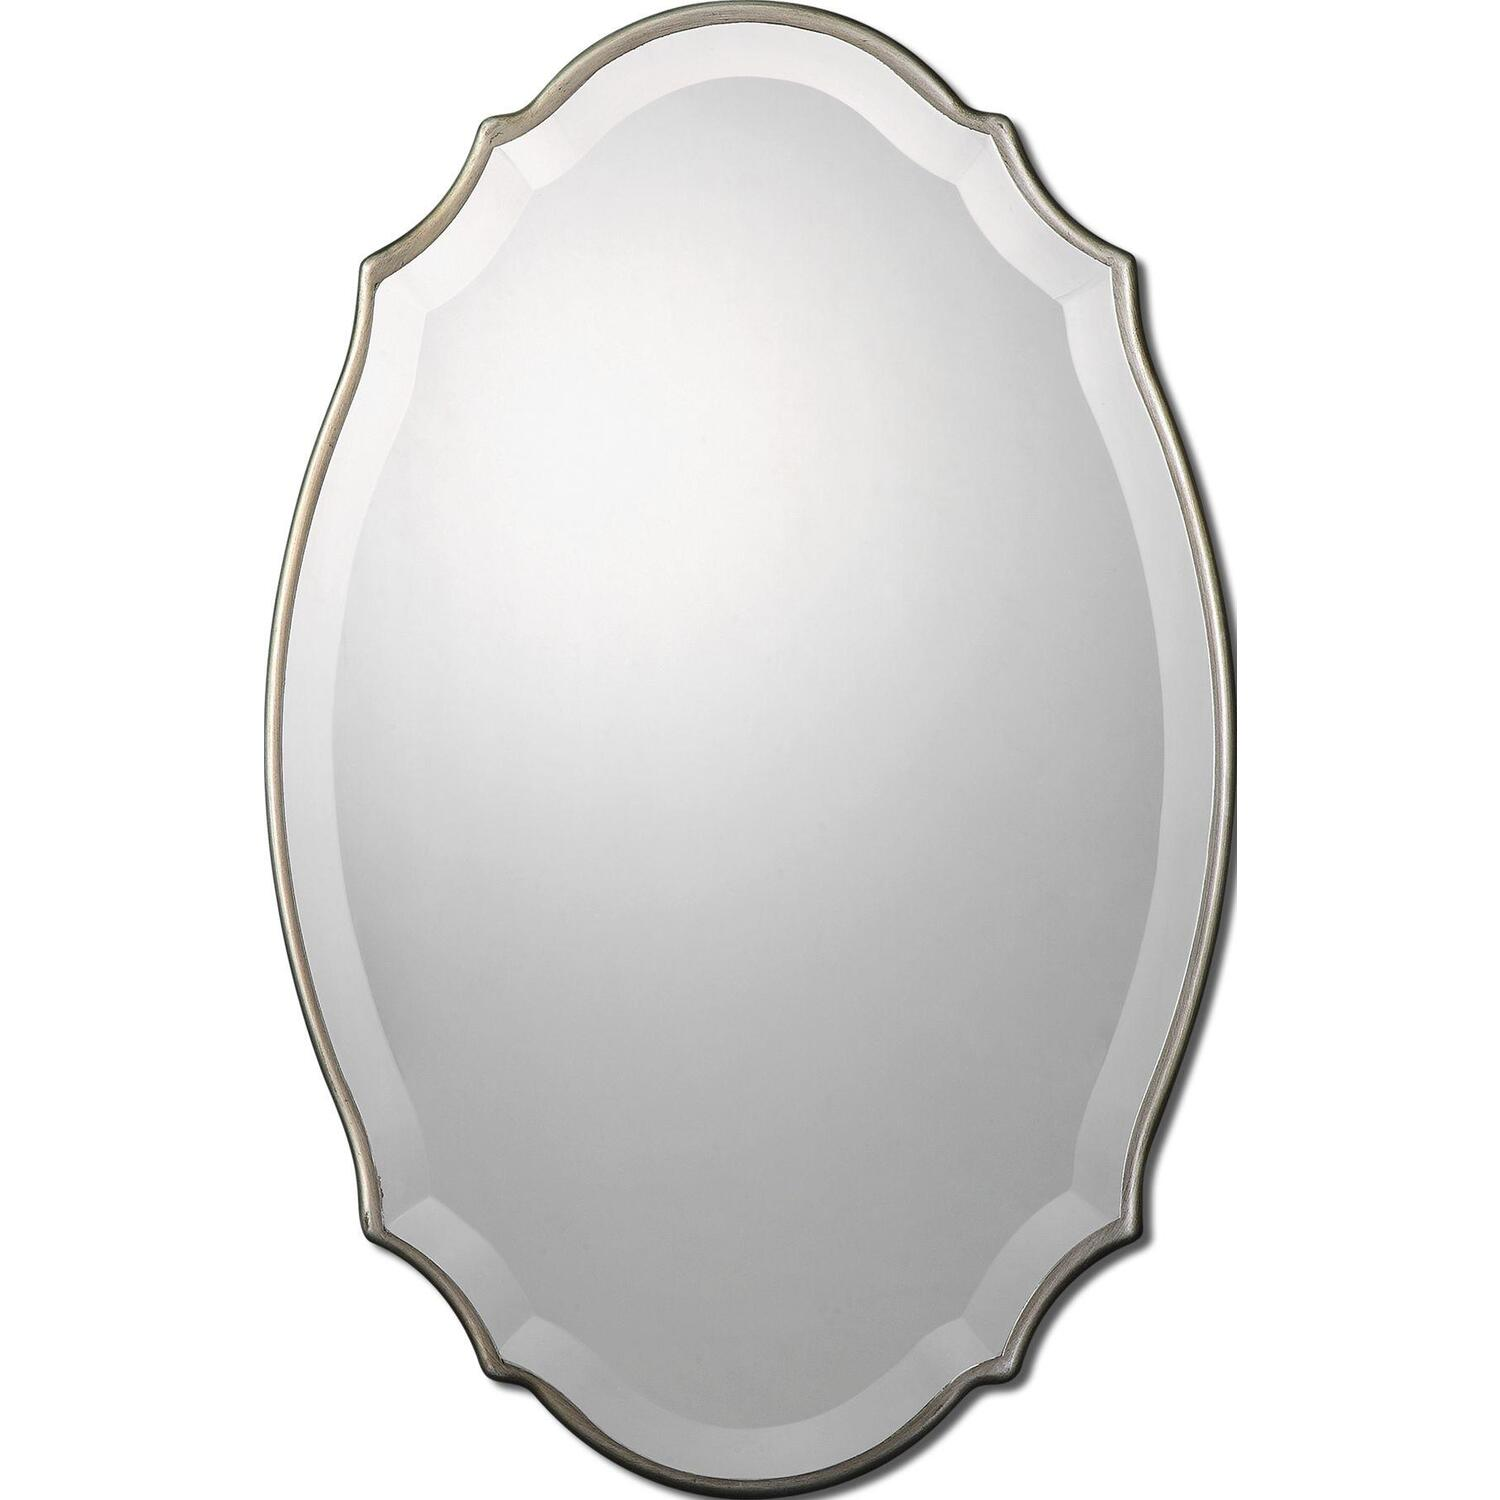 Uttermost mirrors canada gilliam mirror by uttermost for Oval mirror canada